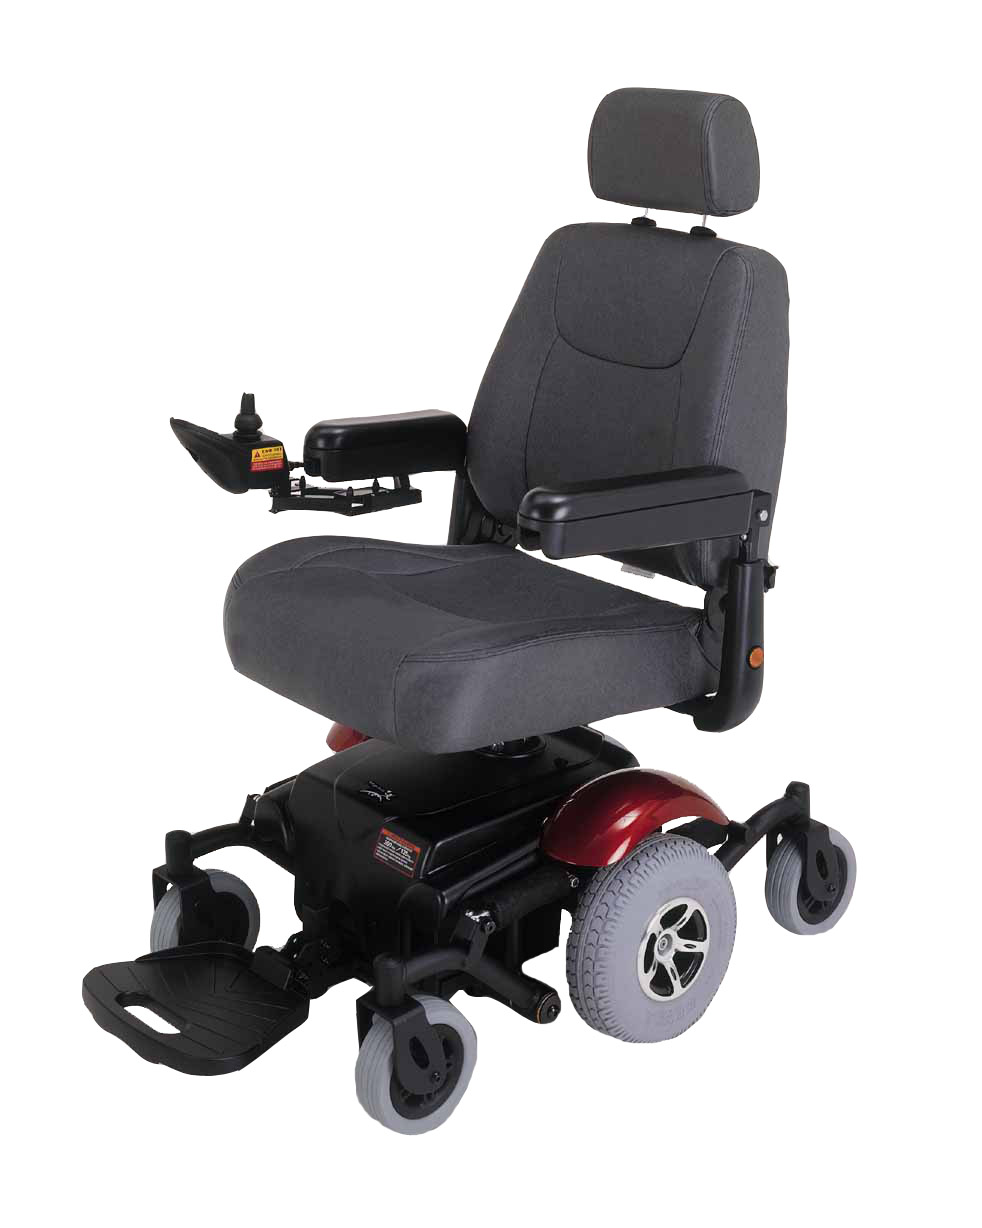 portable electric wheelchairs, chair electric wheel, gogo electric wheel chair, electric wheel chair manufactures